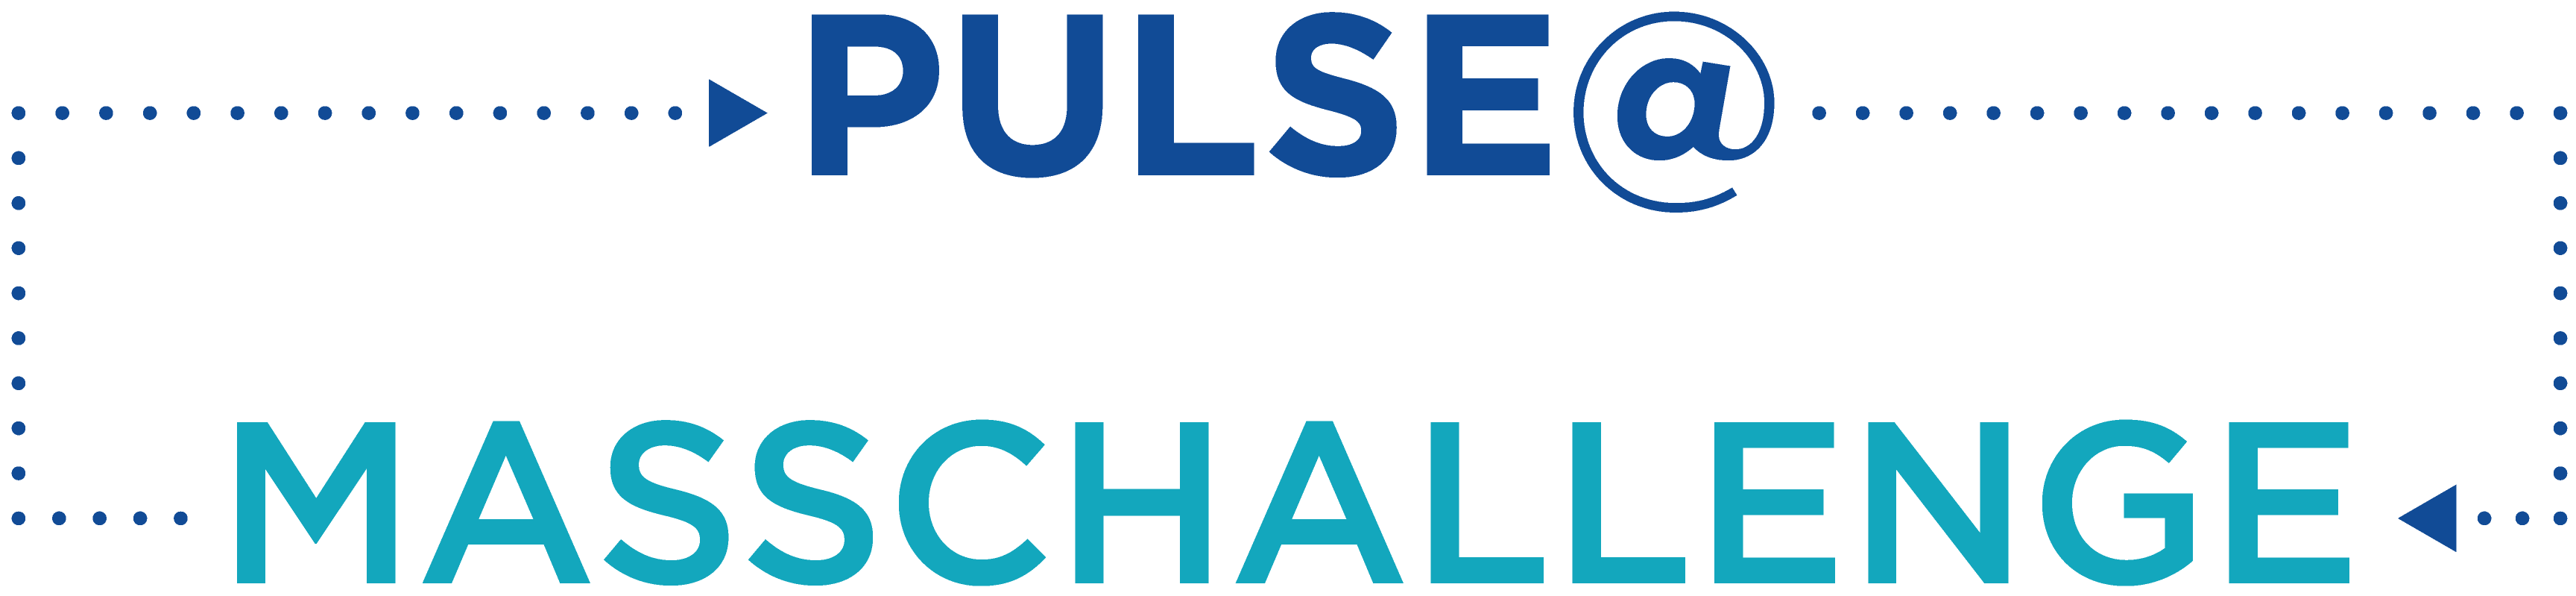 Image result for pulse at masschallenge logo